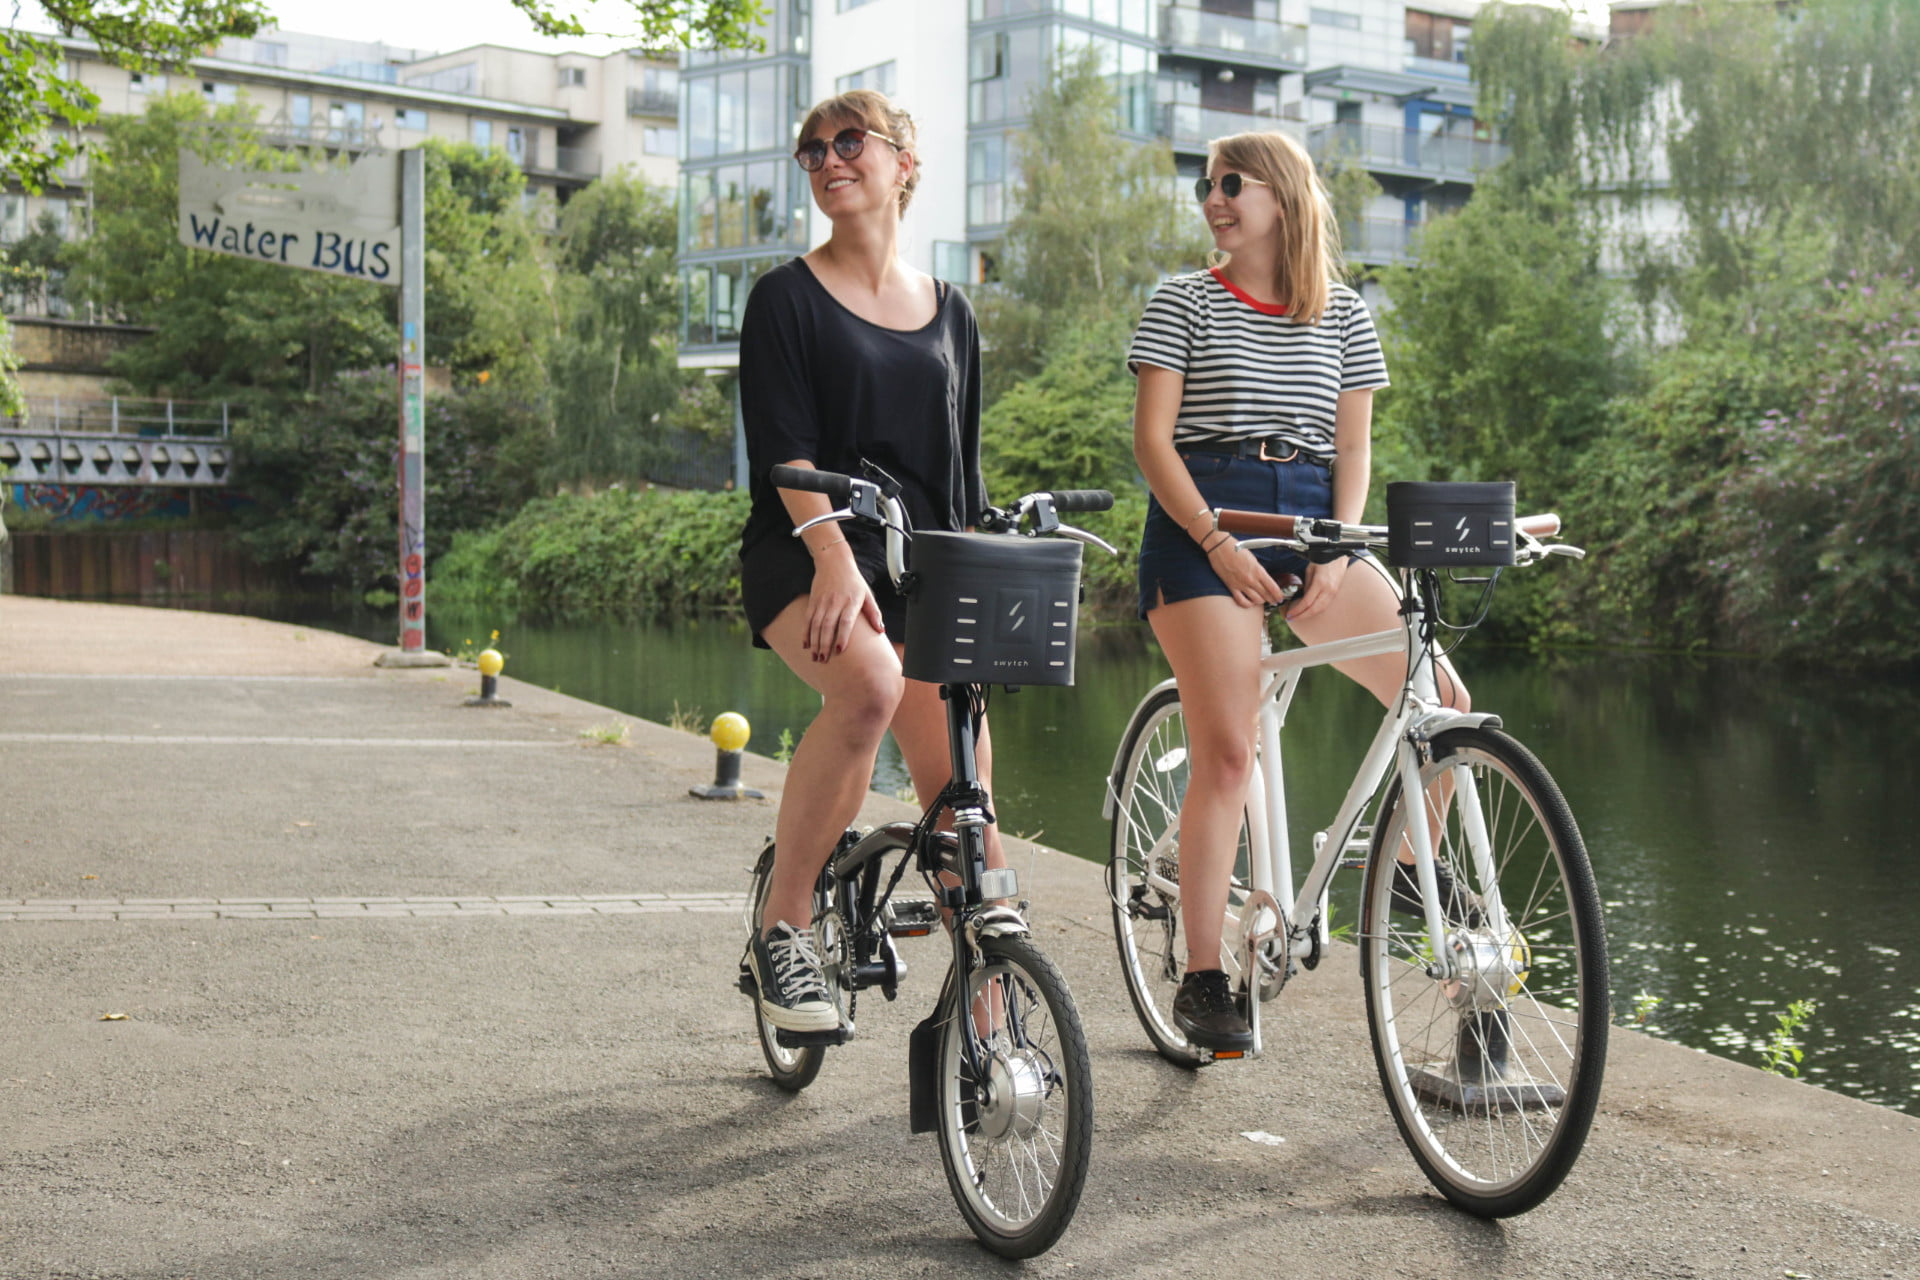 compact swytch kit converts any bike to an e for sustainable transport 2